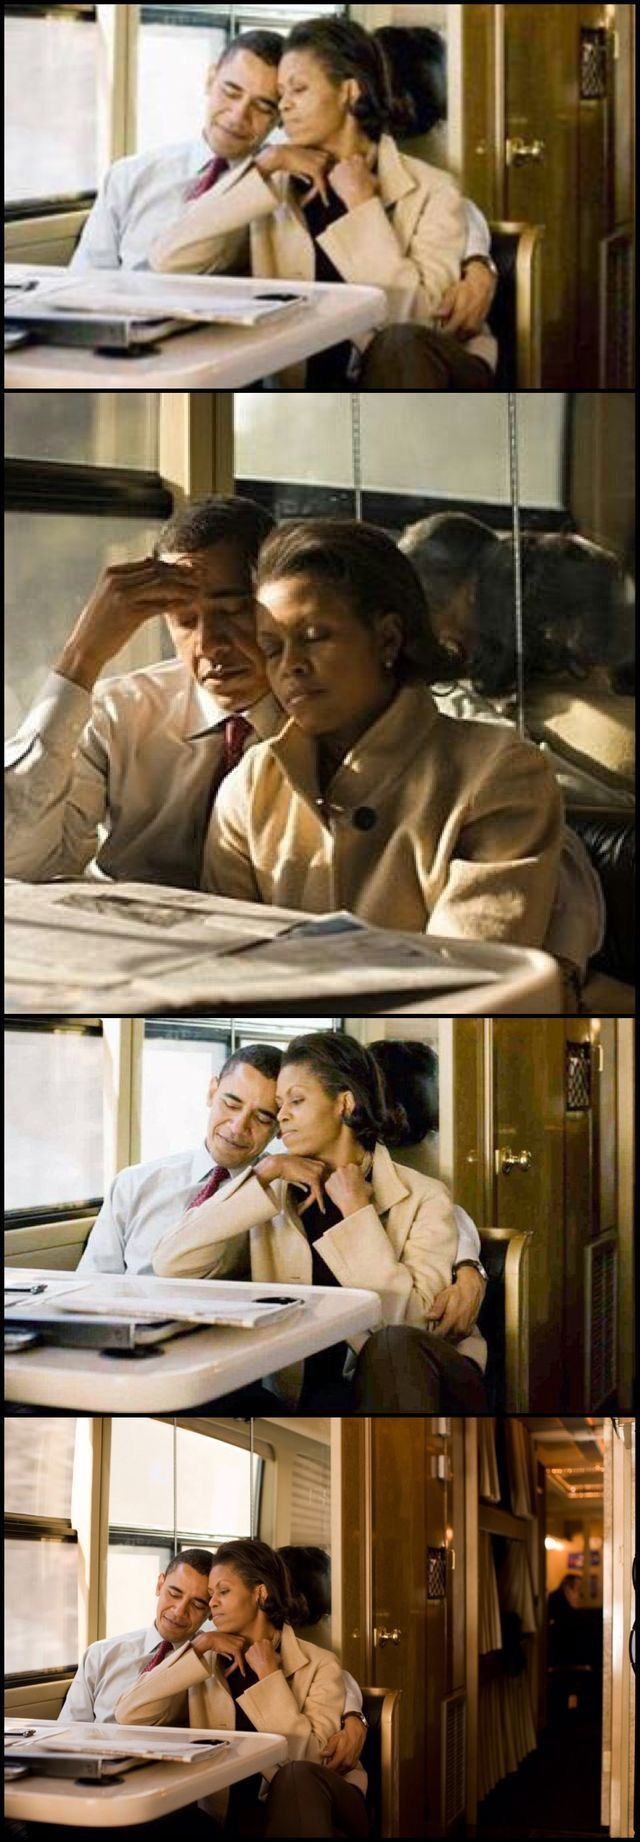 MichelleObama ride on his campaign bus in New Hampshire after a late night of campaigning in 2008. Obama Legacy a smart and classy President and First Lady